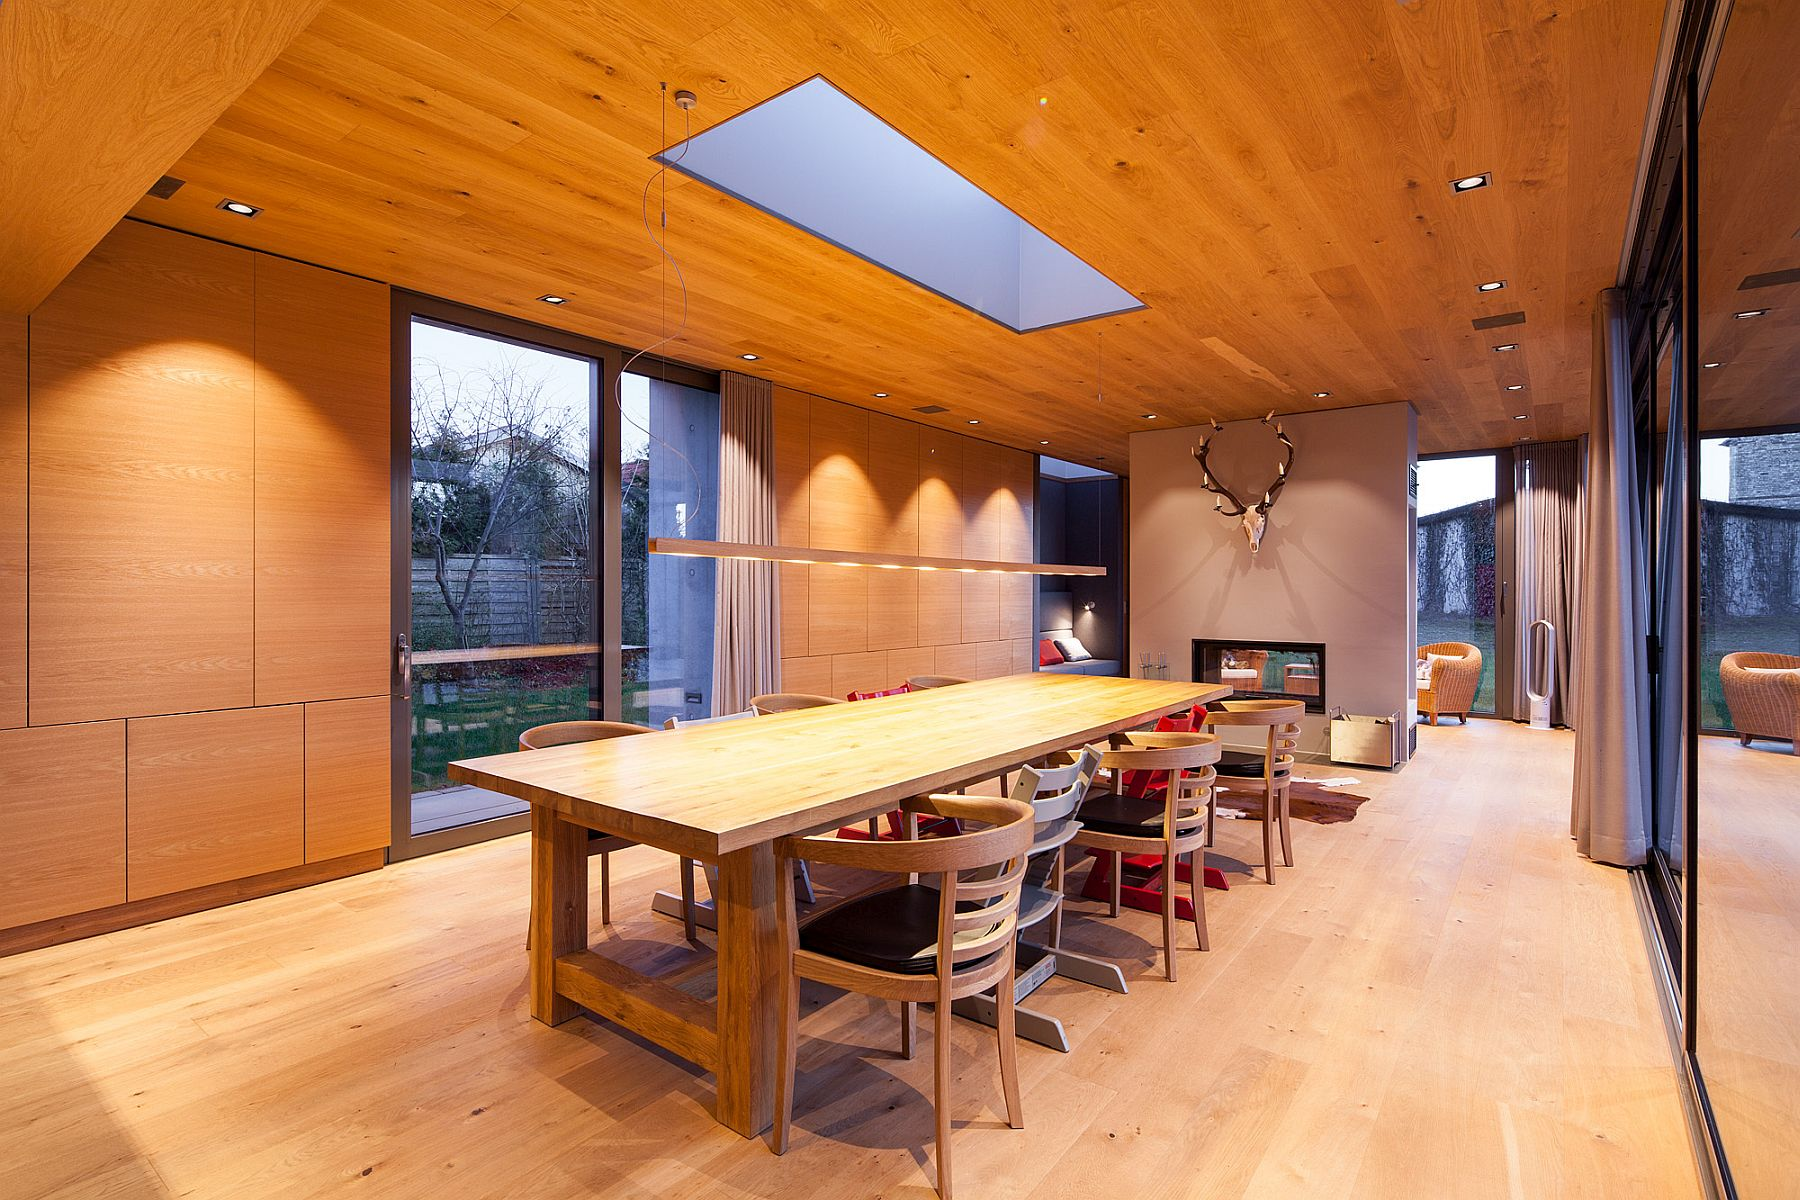 Oke celing and floors coupled with wooden walls and a cozy fireplace in the dining room